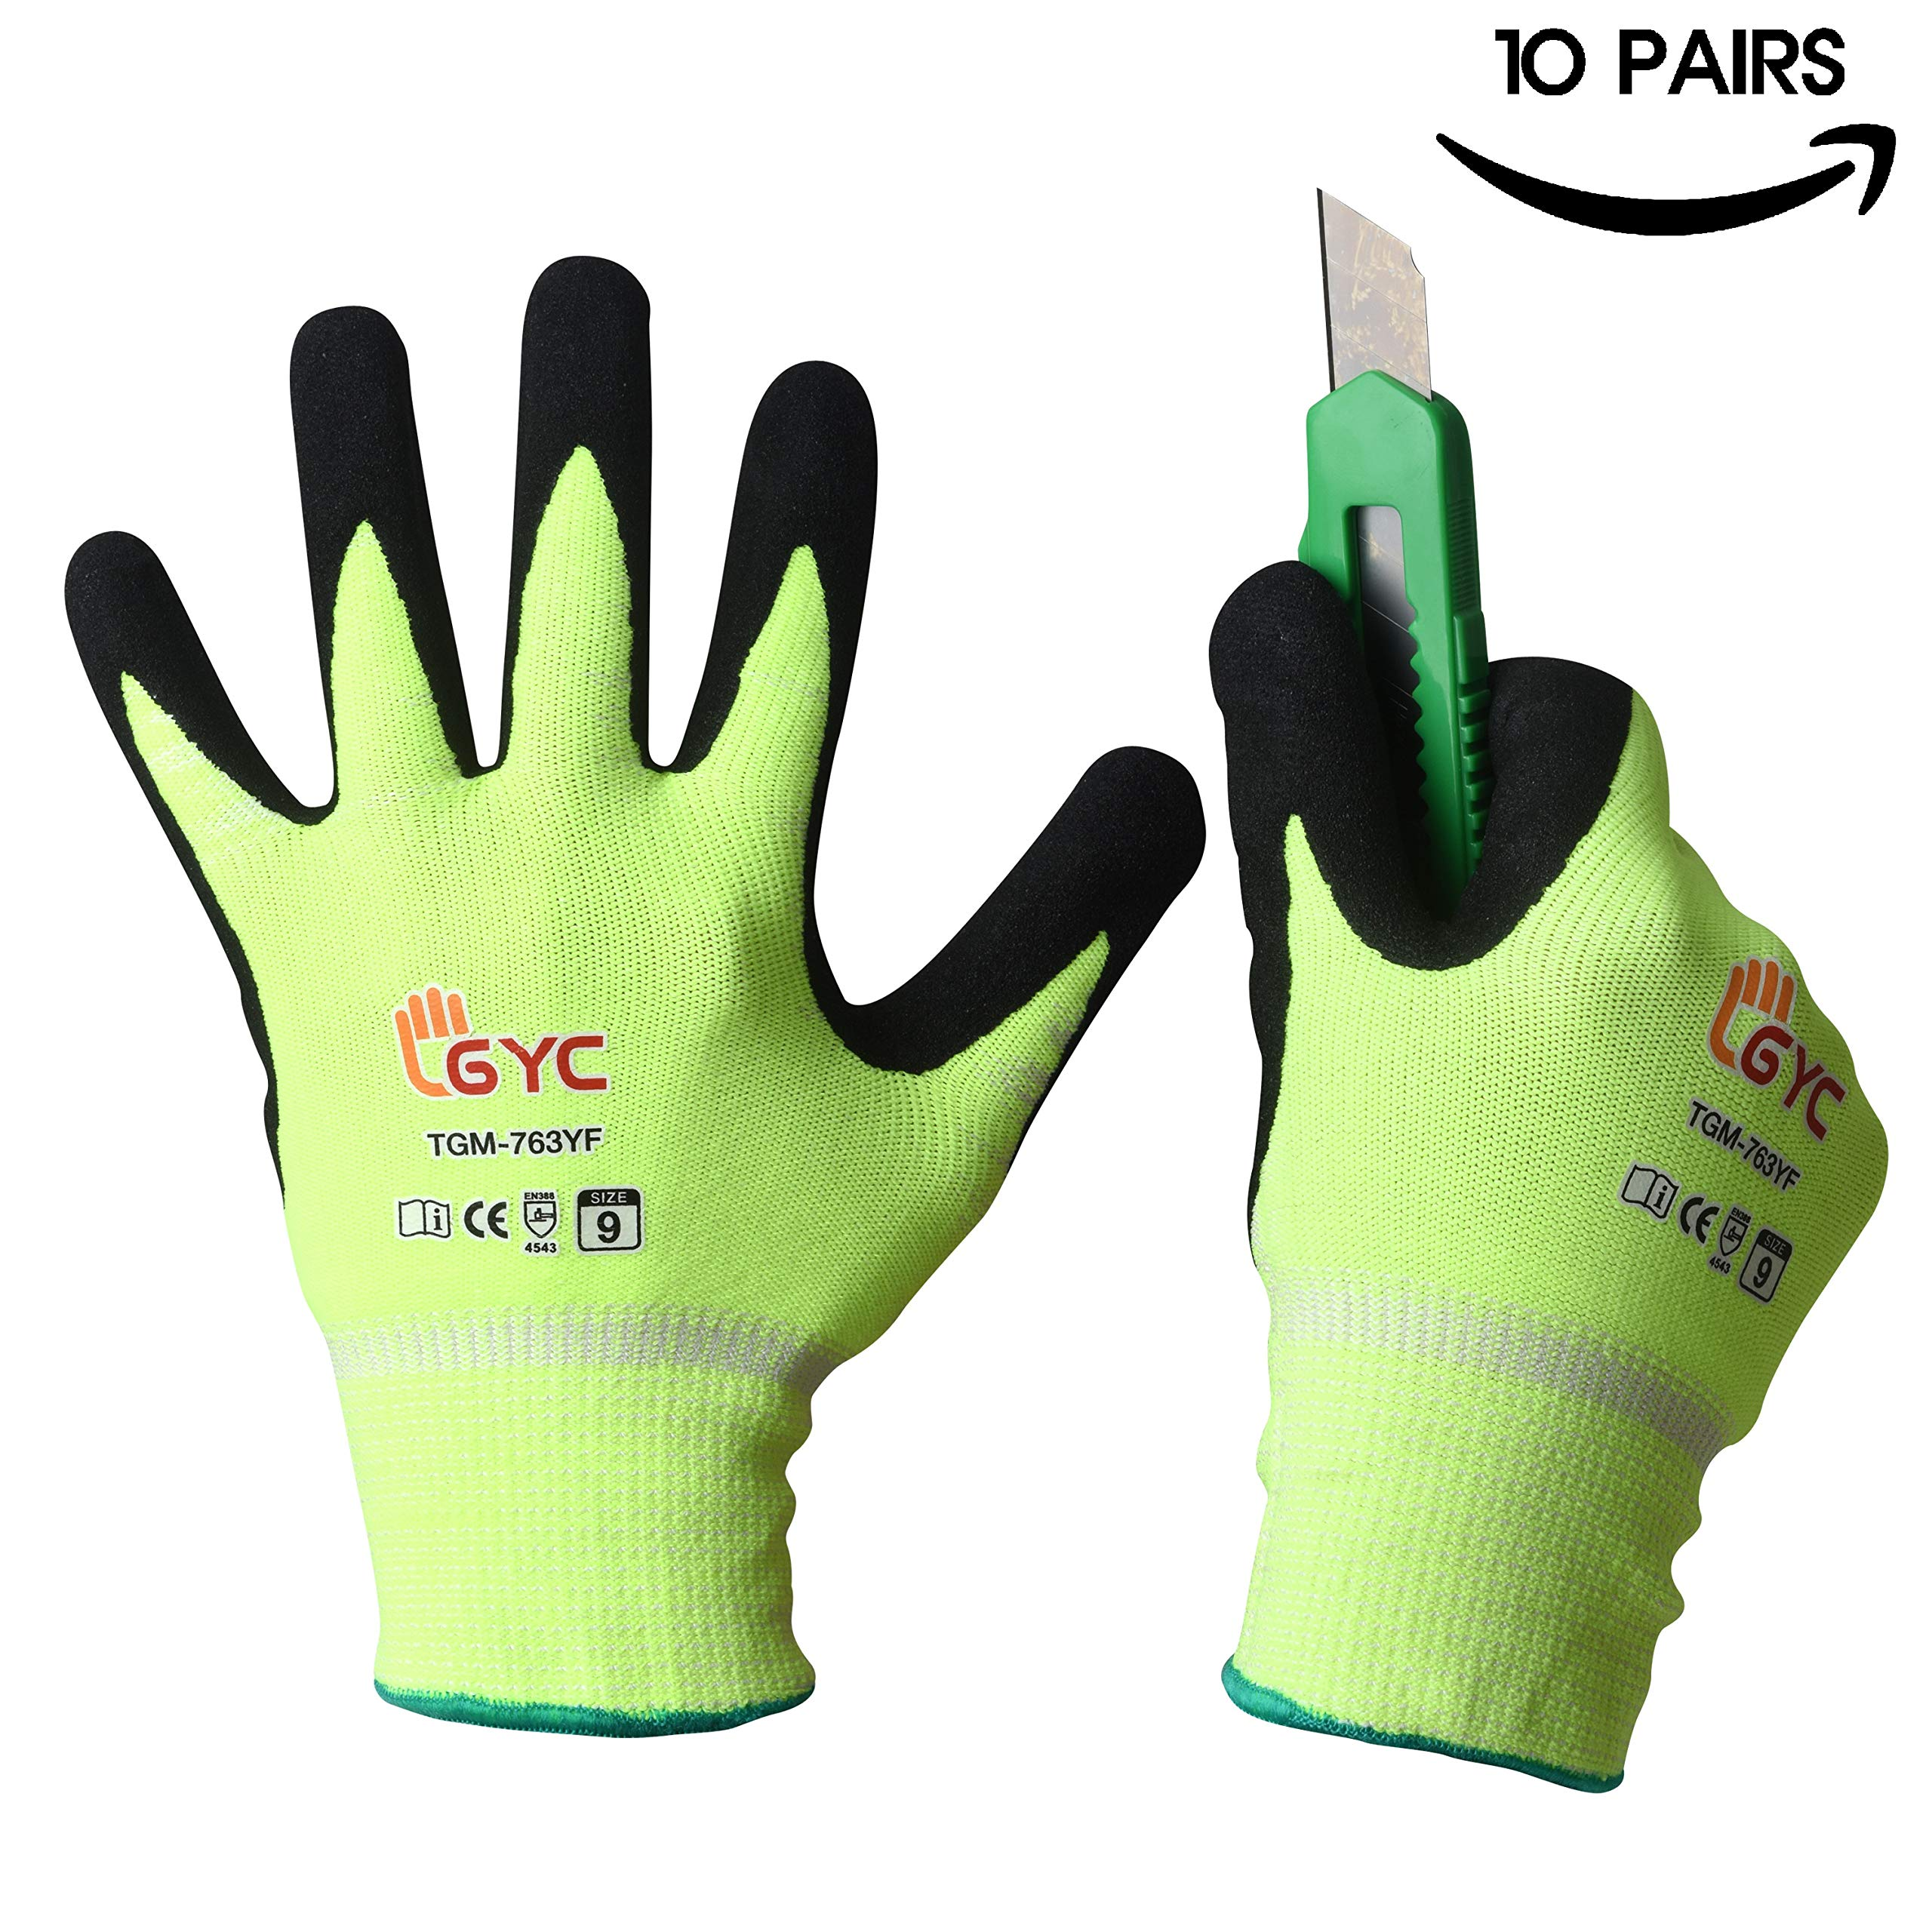 GYC Gloves Cut Resistant Gloves Safety Work Gloves - Level 5 Cut Protection, 10 Pairs Pack - High Performance Dexterity & Breathability, Comfortable(TGM-763YF/SIZE 9 - LARGE, 10 Pairs)